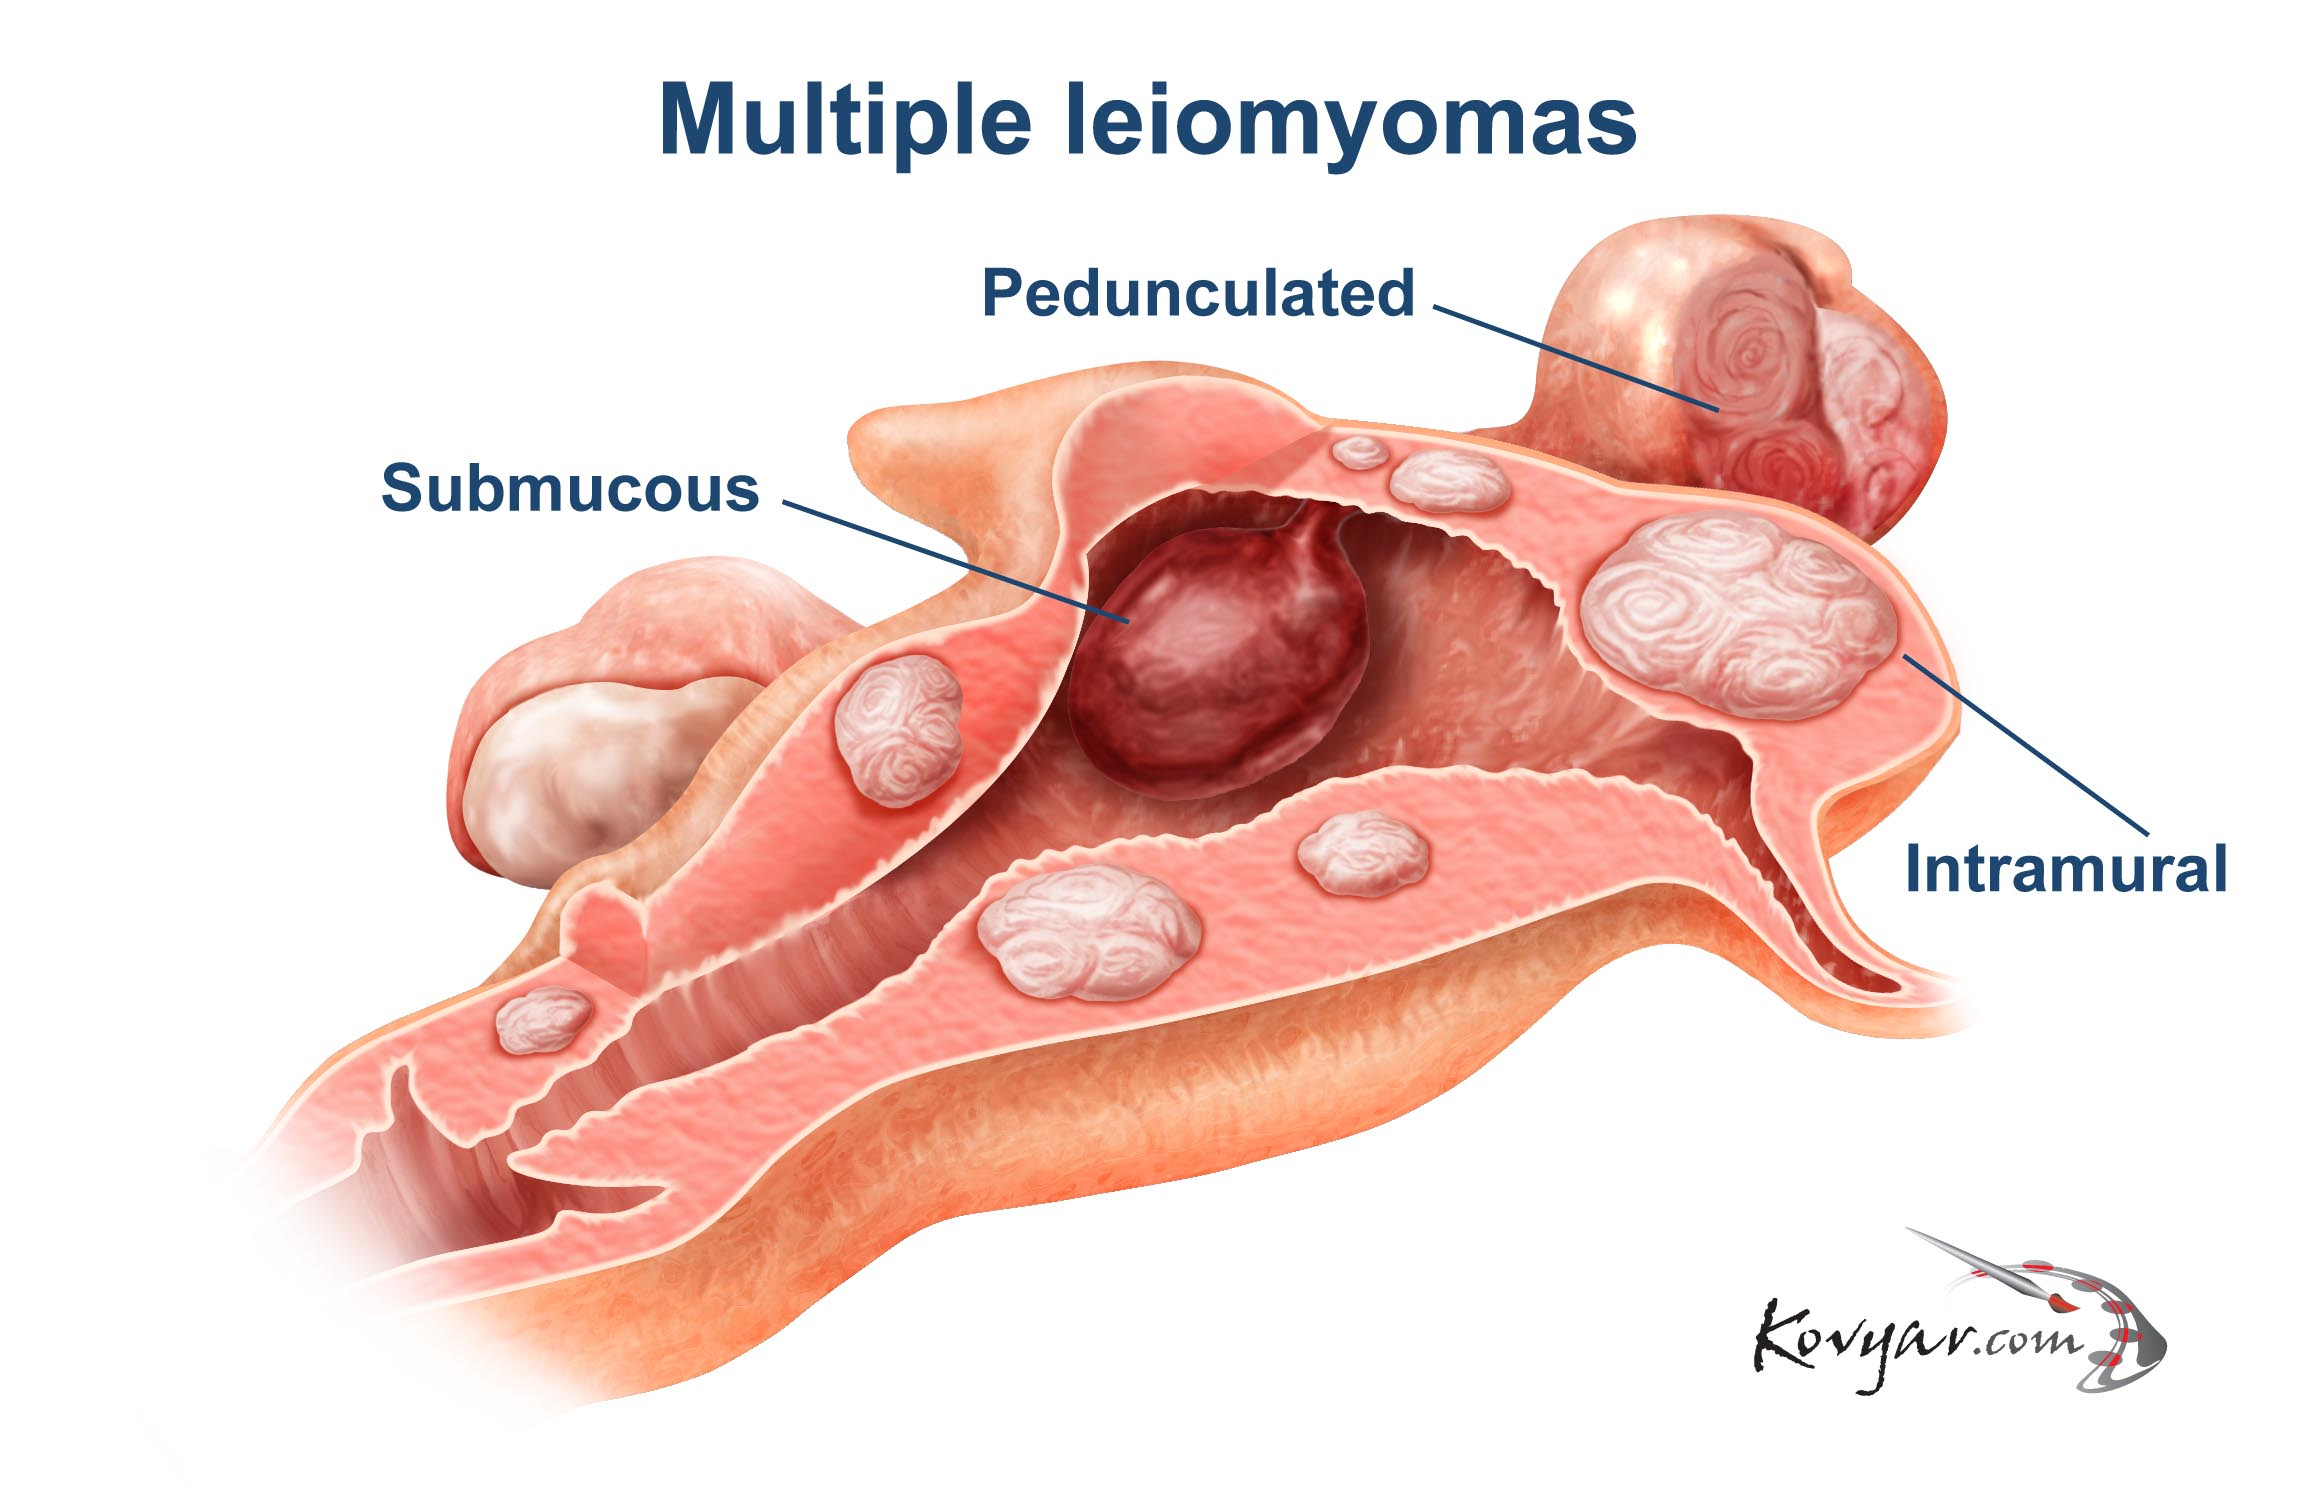 Diagram of Multiple Leiomyomas